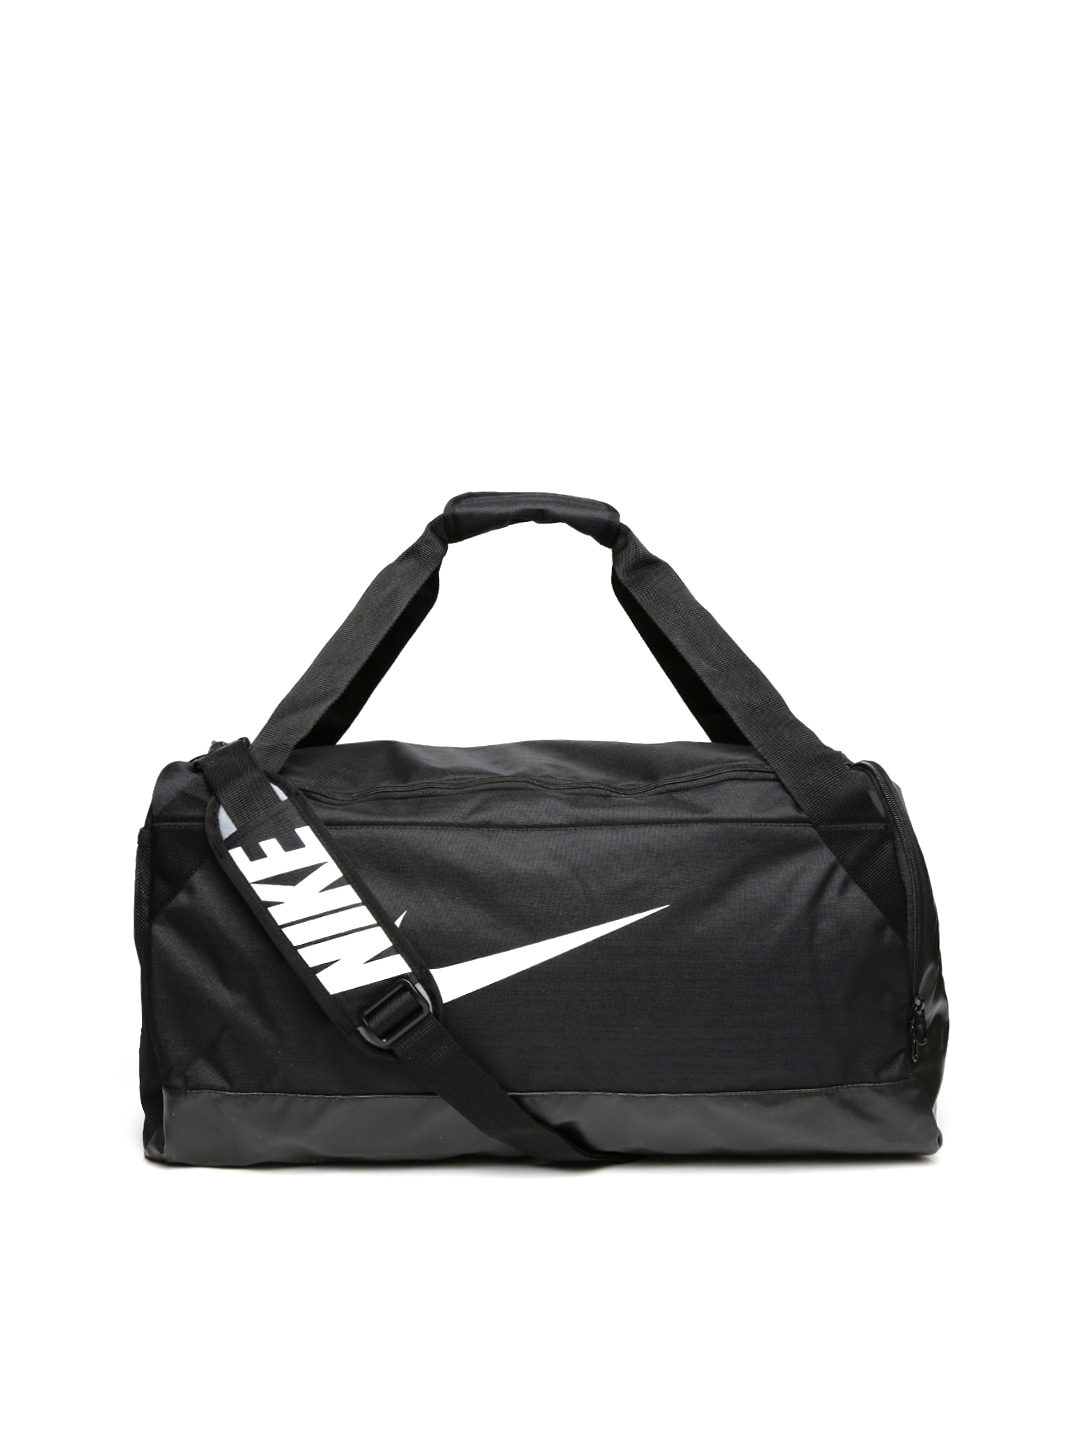 Nike Gas Bags - Buy Nike Gas Bags online in India 523c292ce2cd9